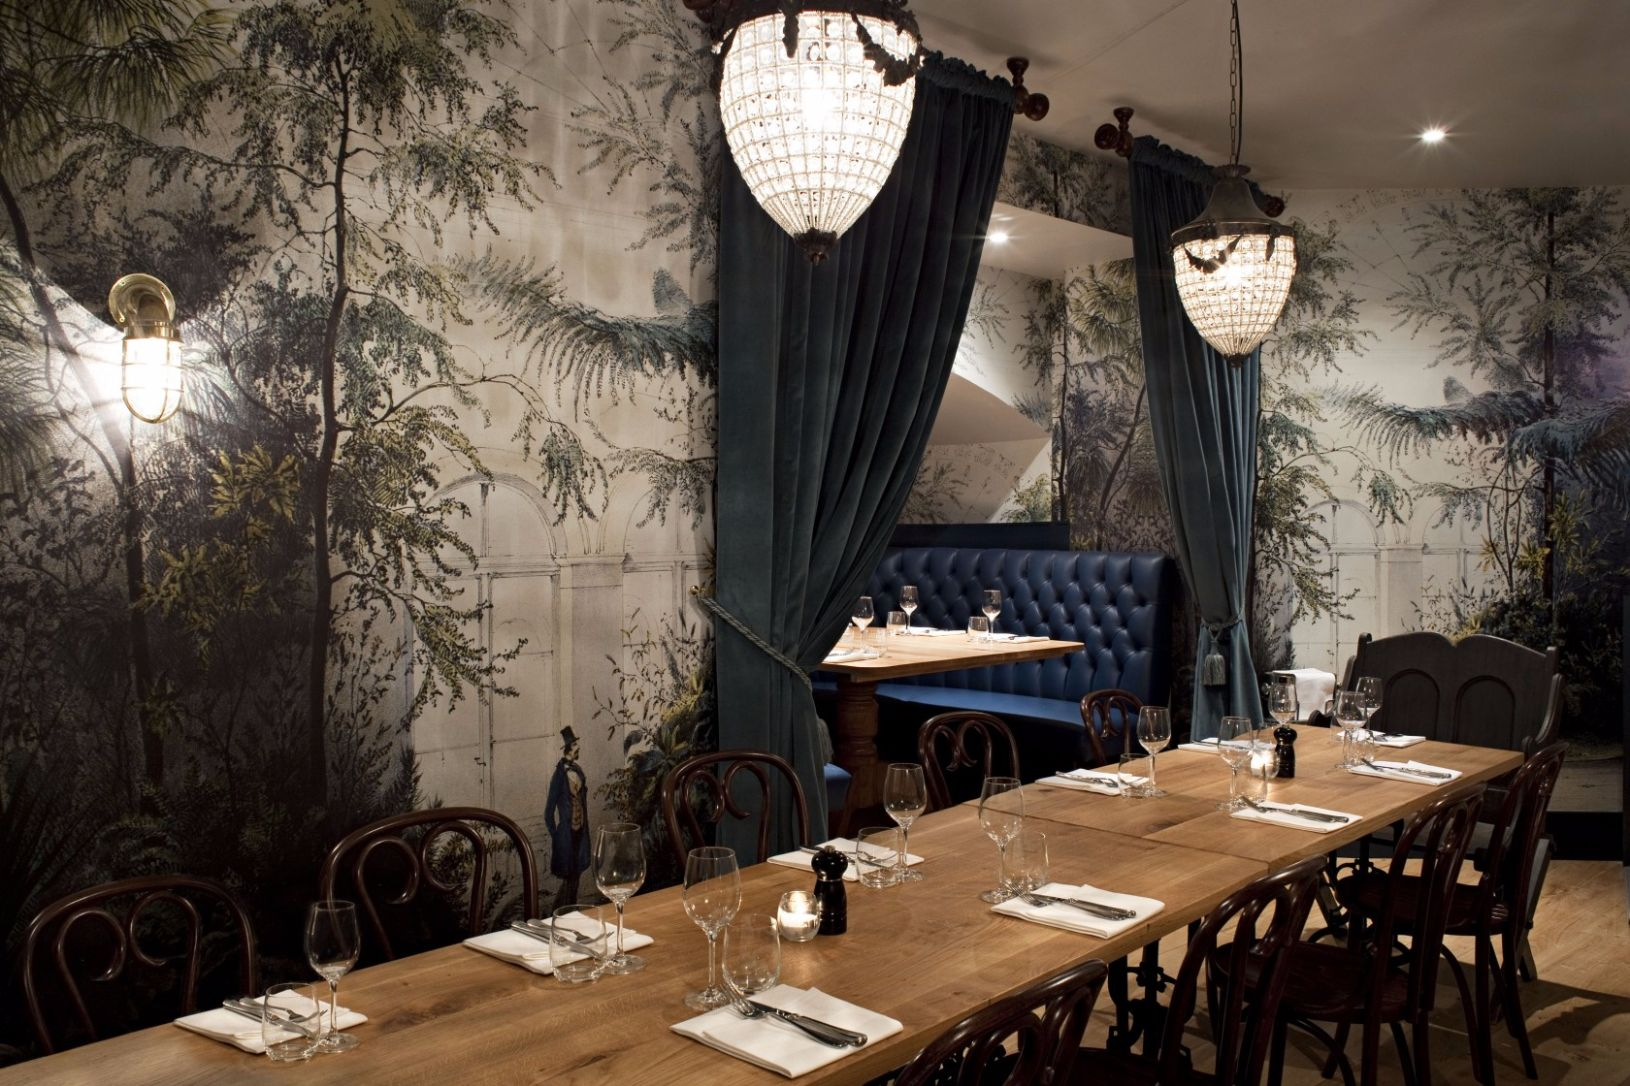 This spooky semi-private dining room in Chelsea is perfect for a fiendishly good Halloween feast.